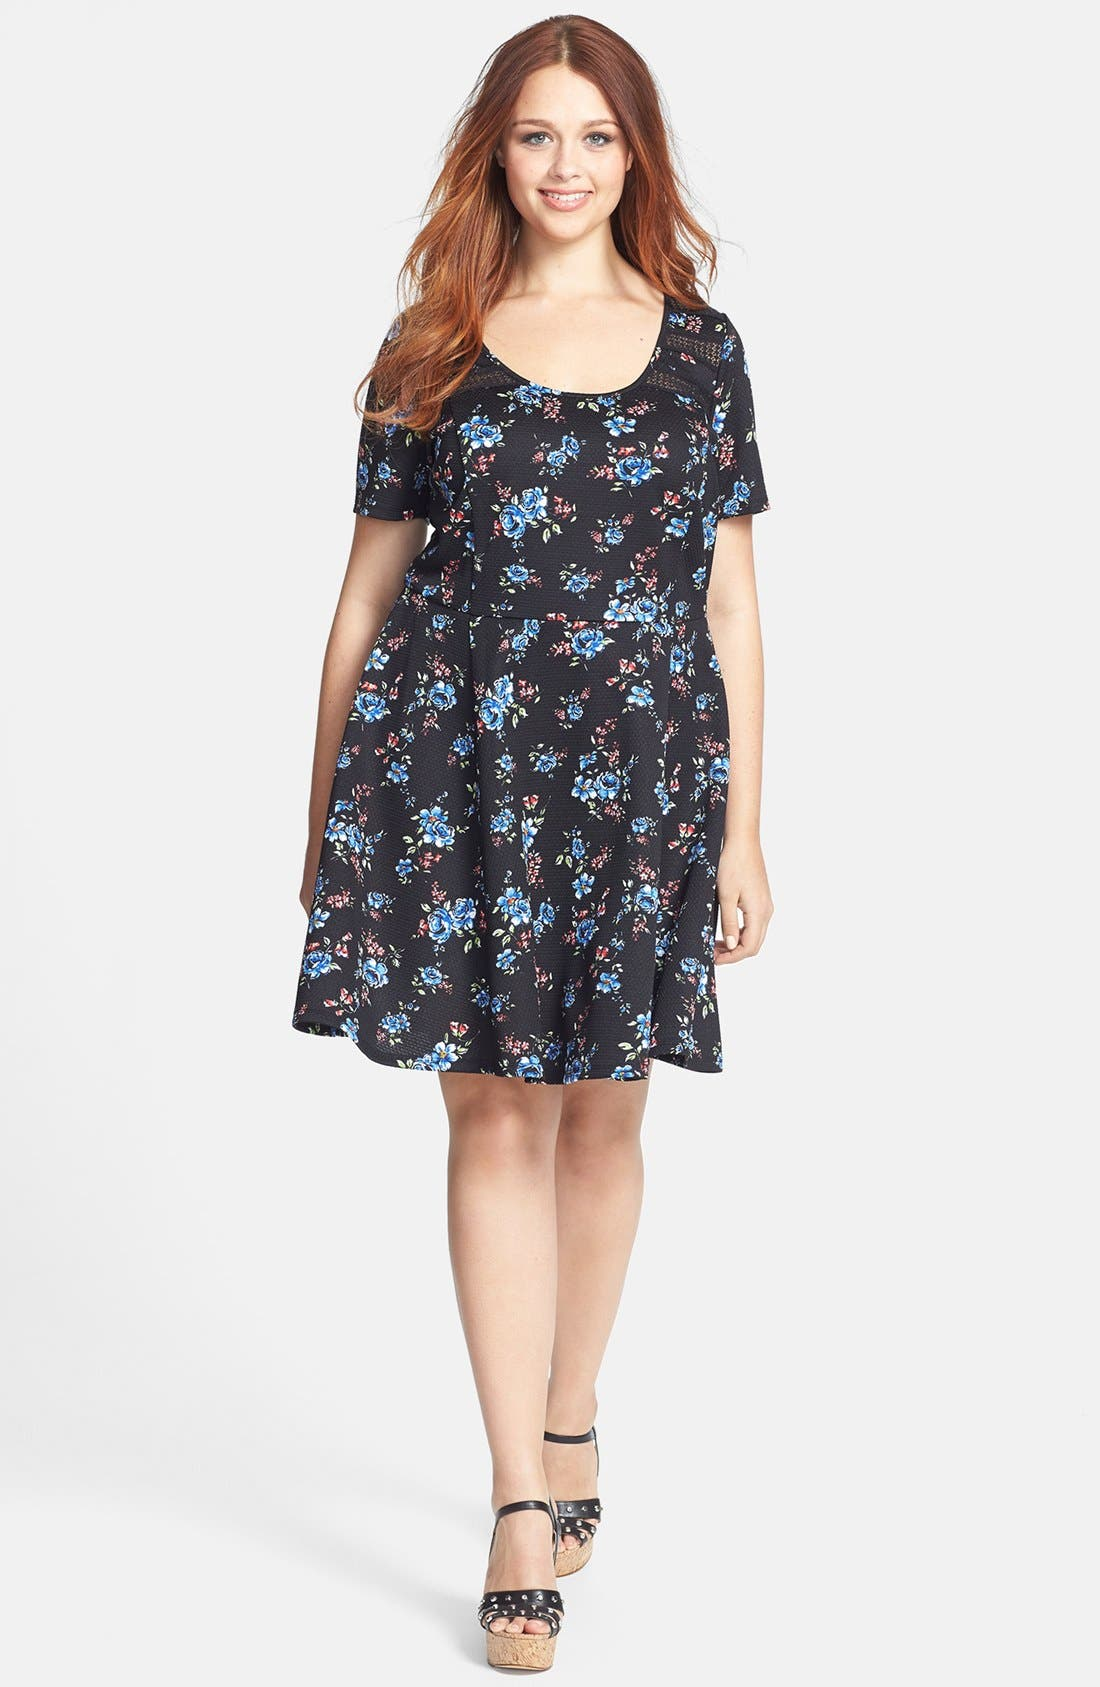 Alternate Image 1 Selected - Jessica Simpson 'Reese' Fit & Flare Dress (Plus Size)